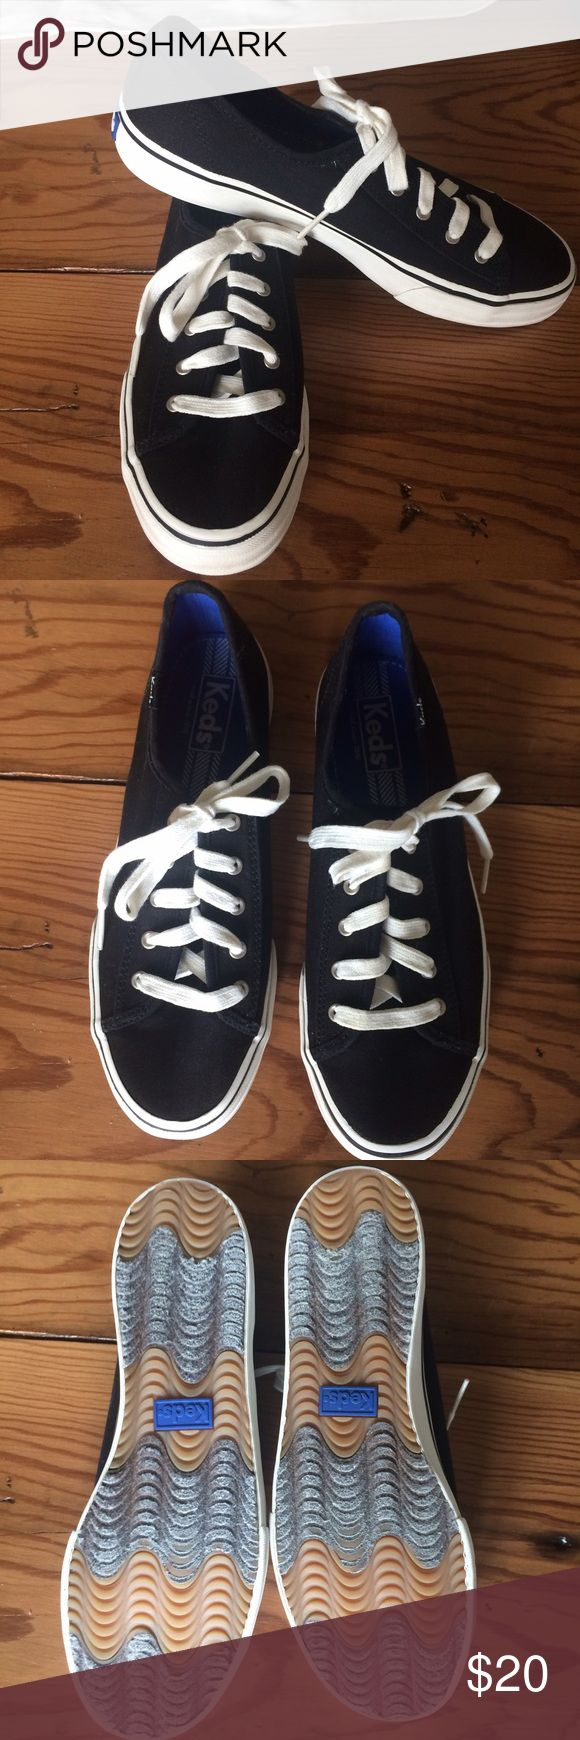 Black Keds size 7 1/2 Black Keds size 7 1/2 Creme laces. Like new condition. Keds Shoes Sneakers